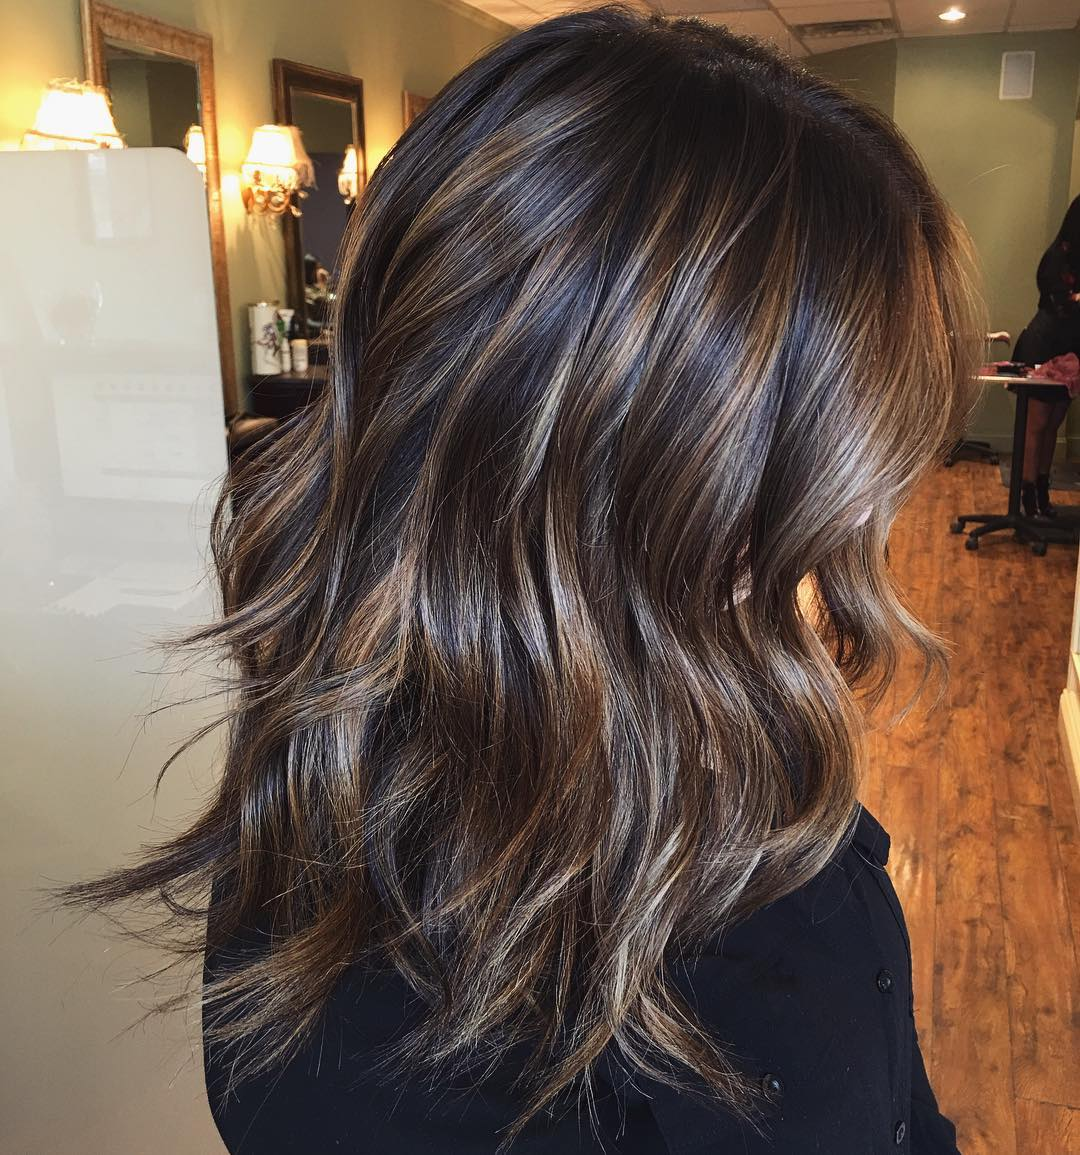 Medium brunette hair 2019